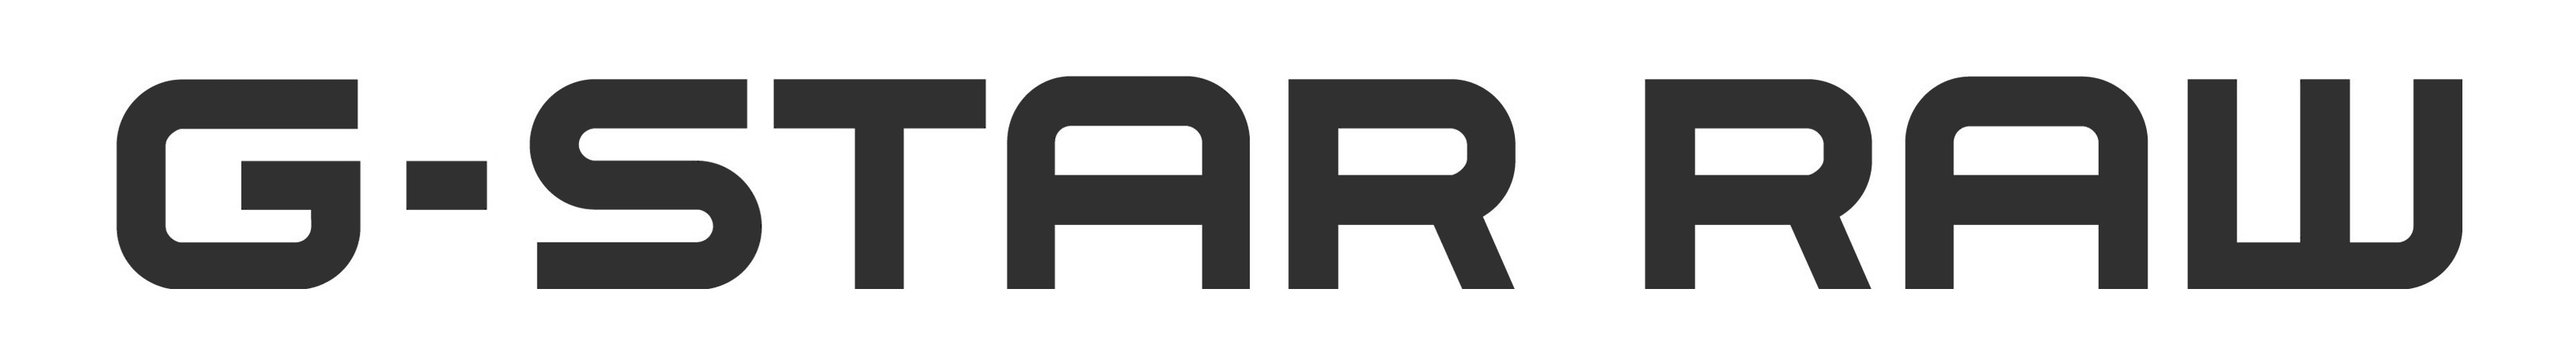 G-Star Raw logo, logotype